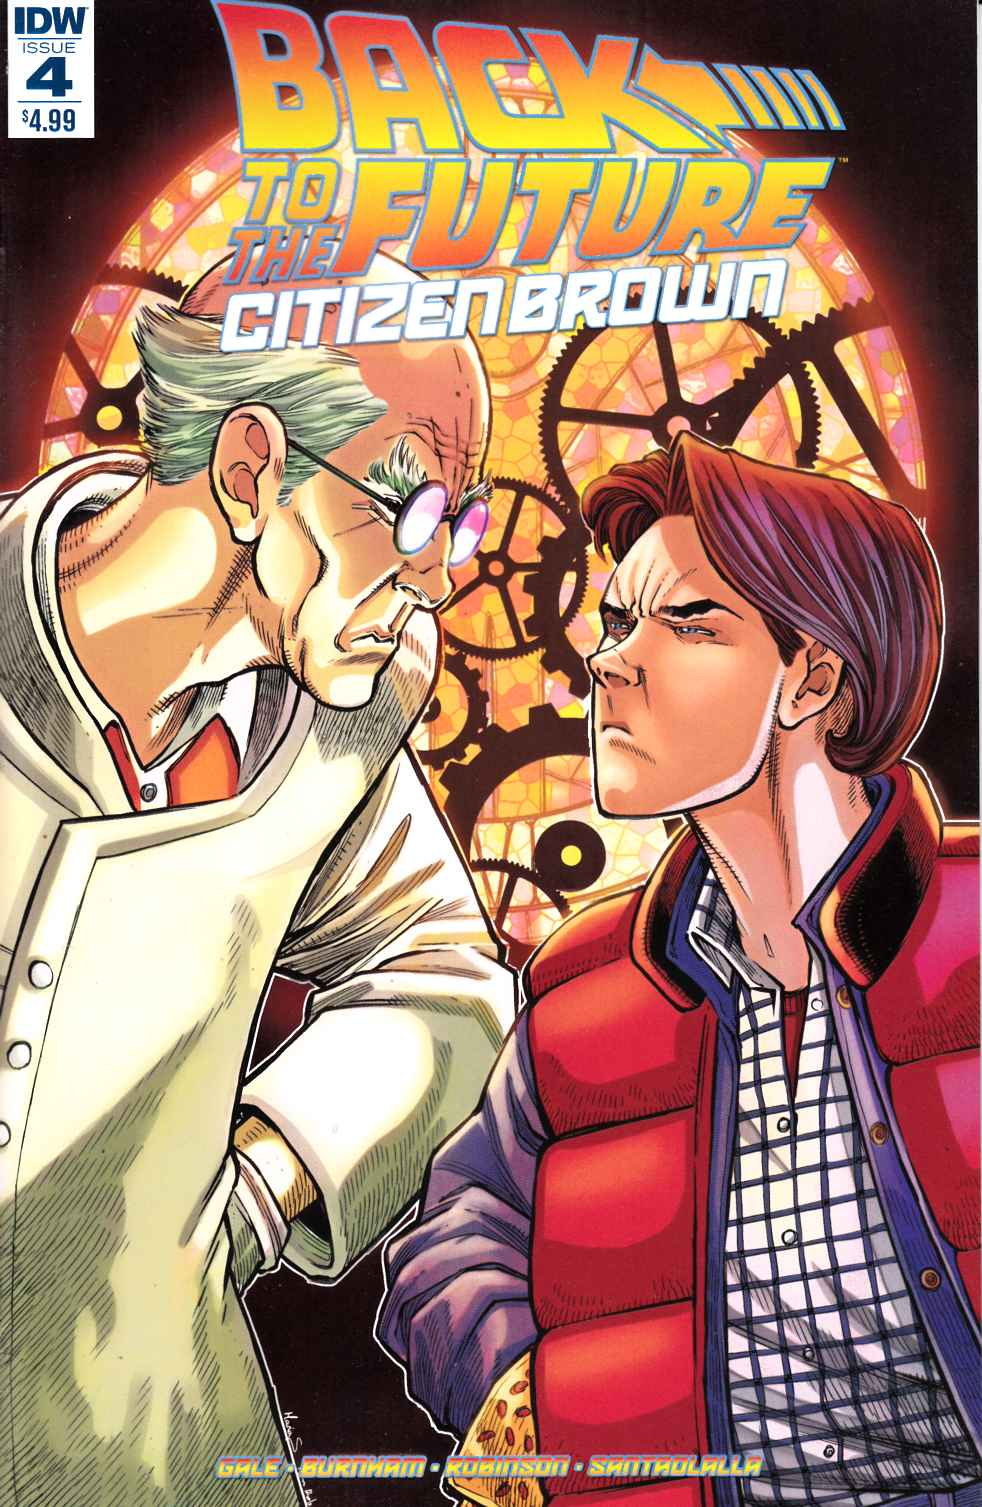 Back to the Future Citizen Brown #4 [IDW Comic]